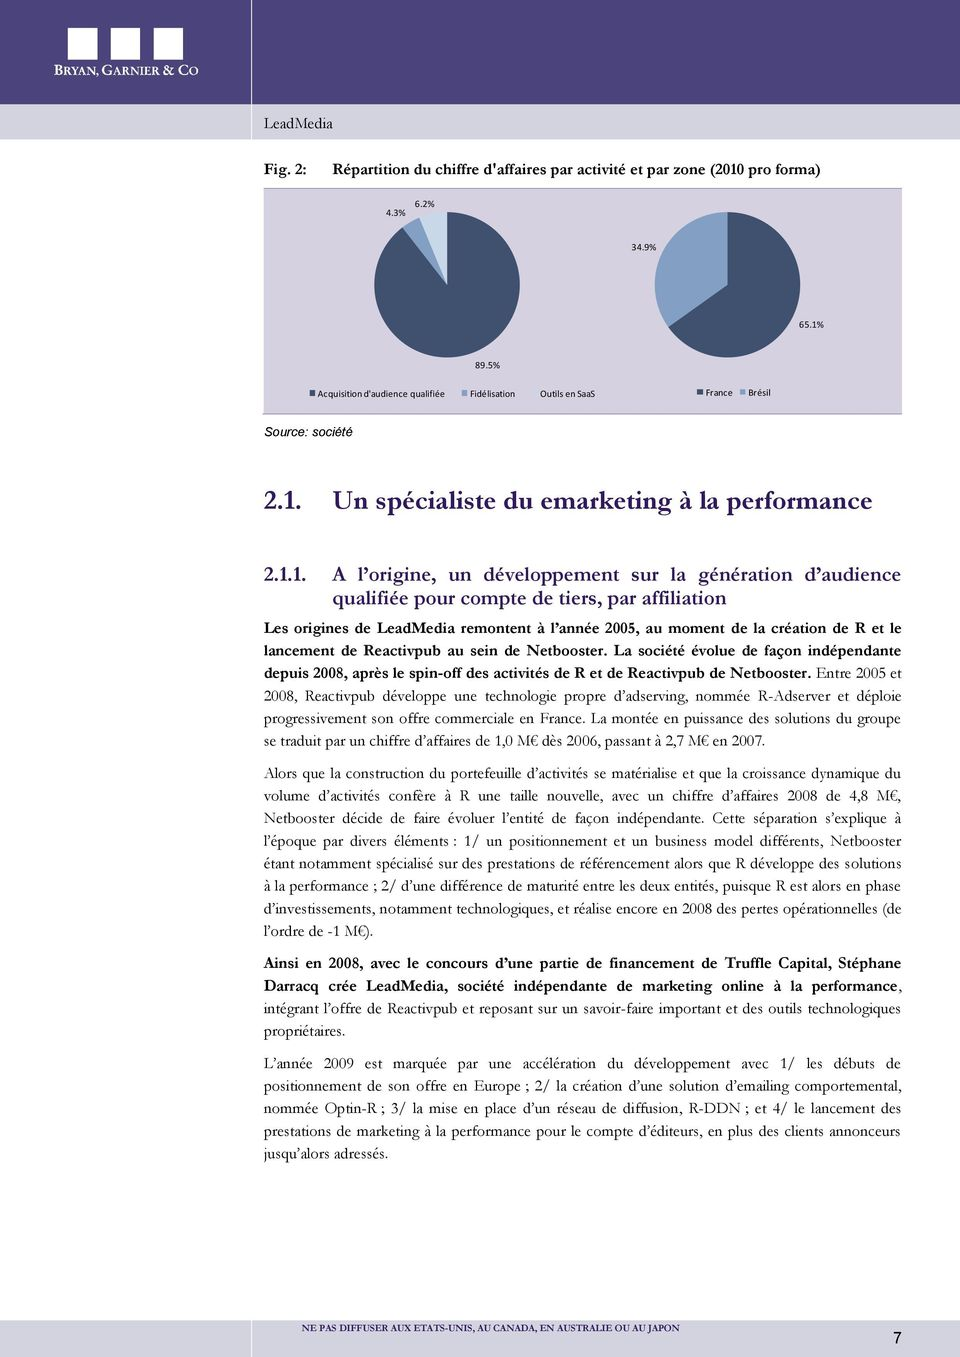 Un spécialiste du emarketing à la performance 2.1.